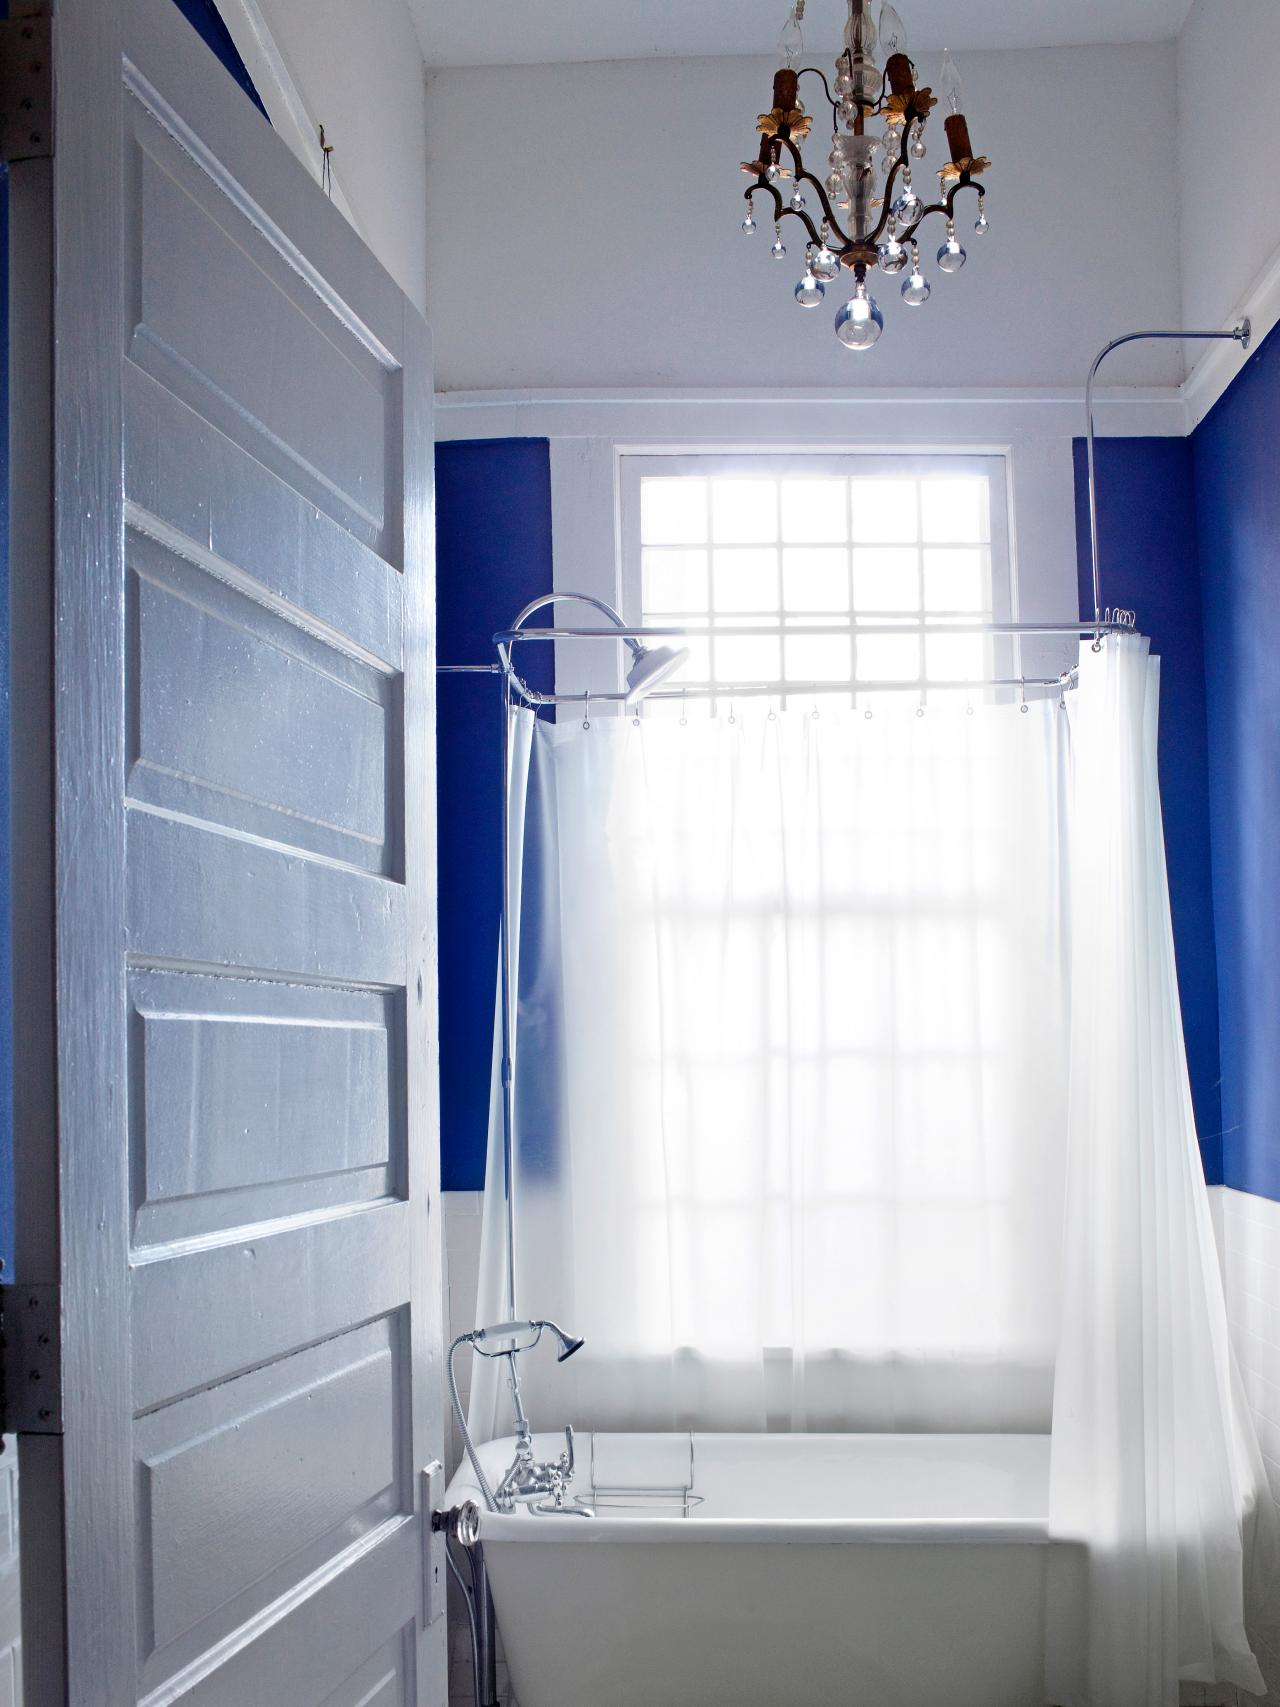 Bathroom Curtain Ideas: The Key for a Refreshing Bathroom - MidCityEast